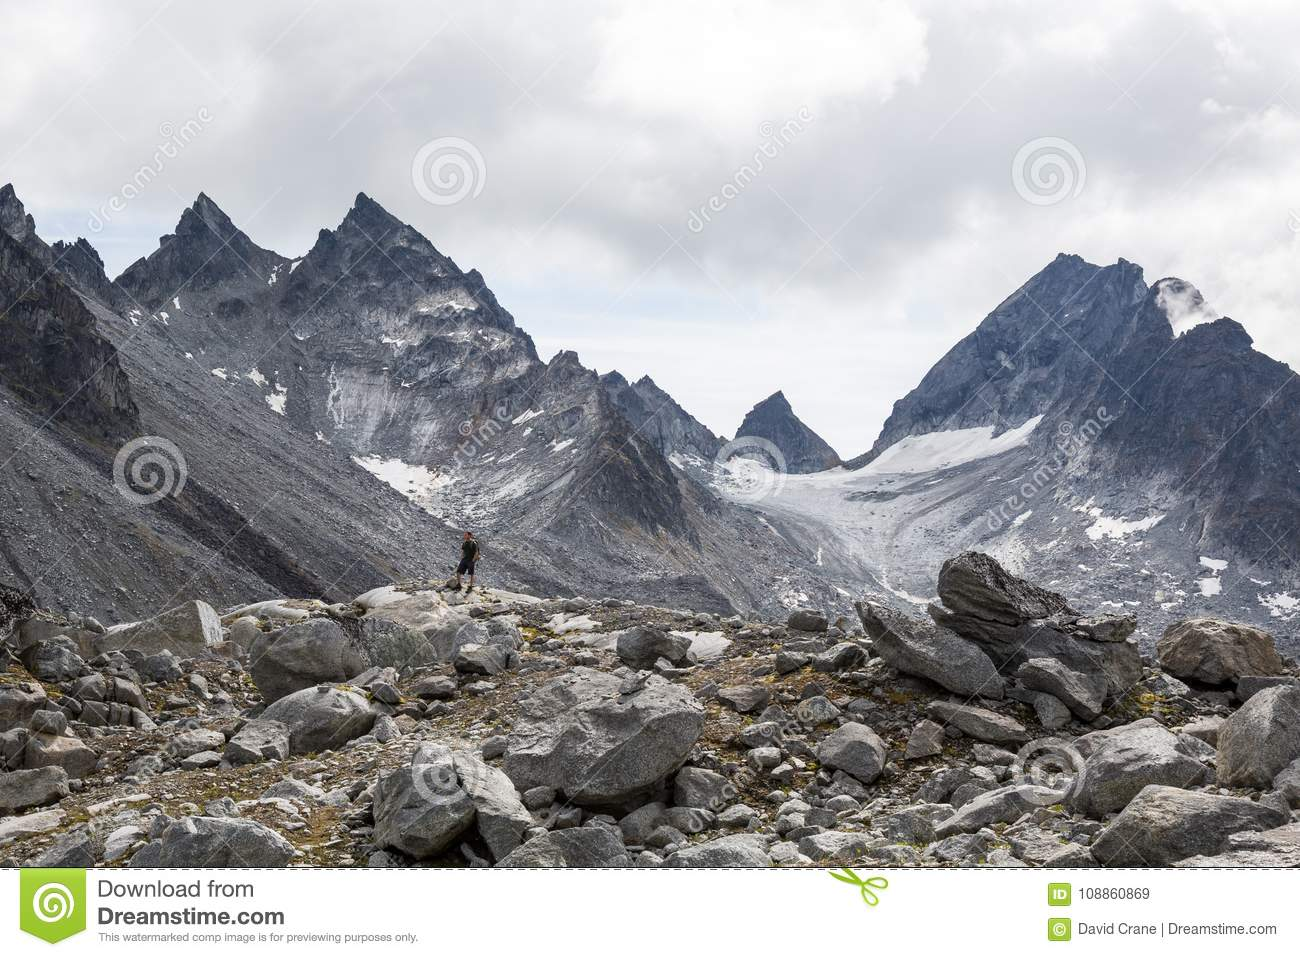 Man Standing Below Huge Cirque Glacier And Rocky Peaks In The